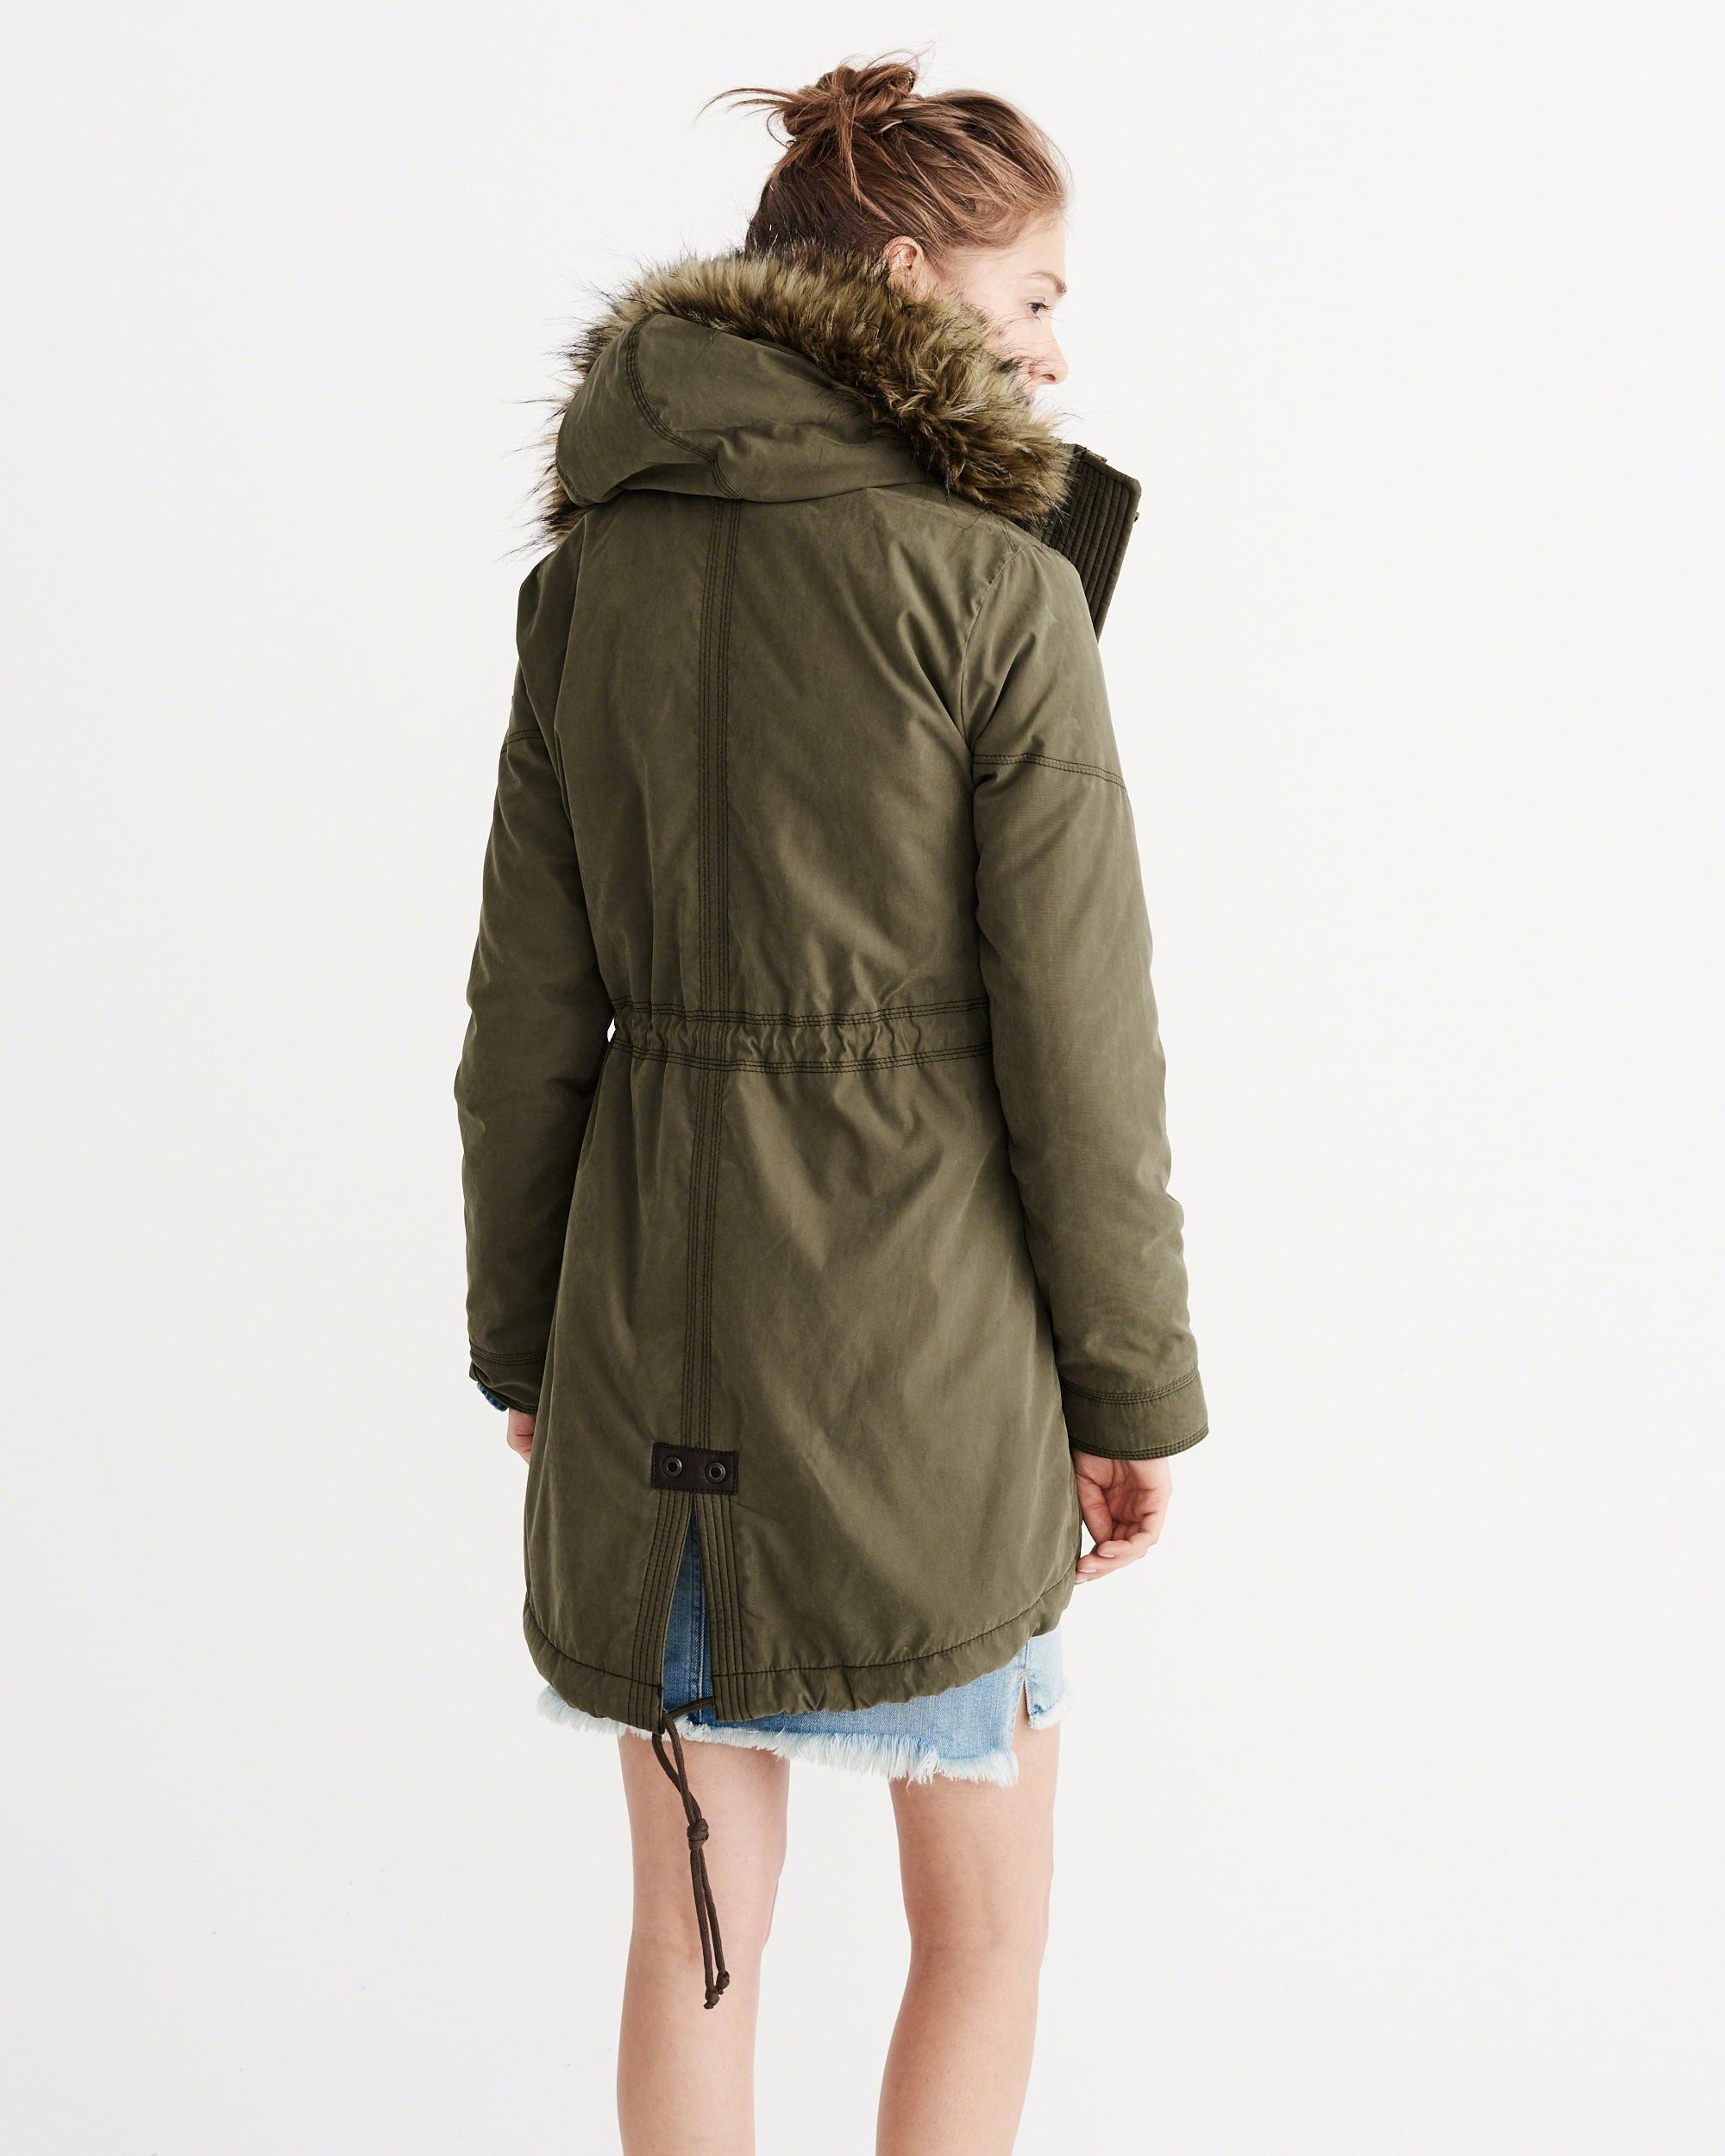 Abercrombie & fitch Sherpa-lined Military Parka | Lyst